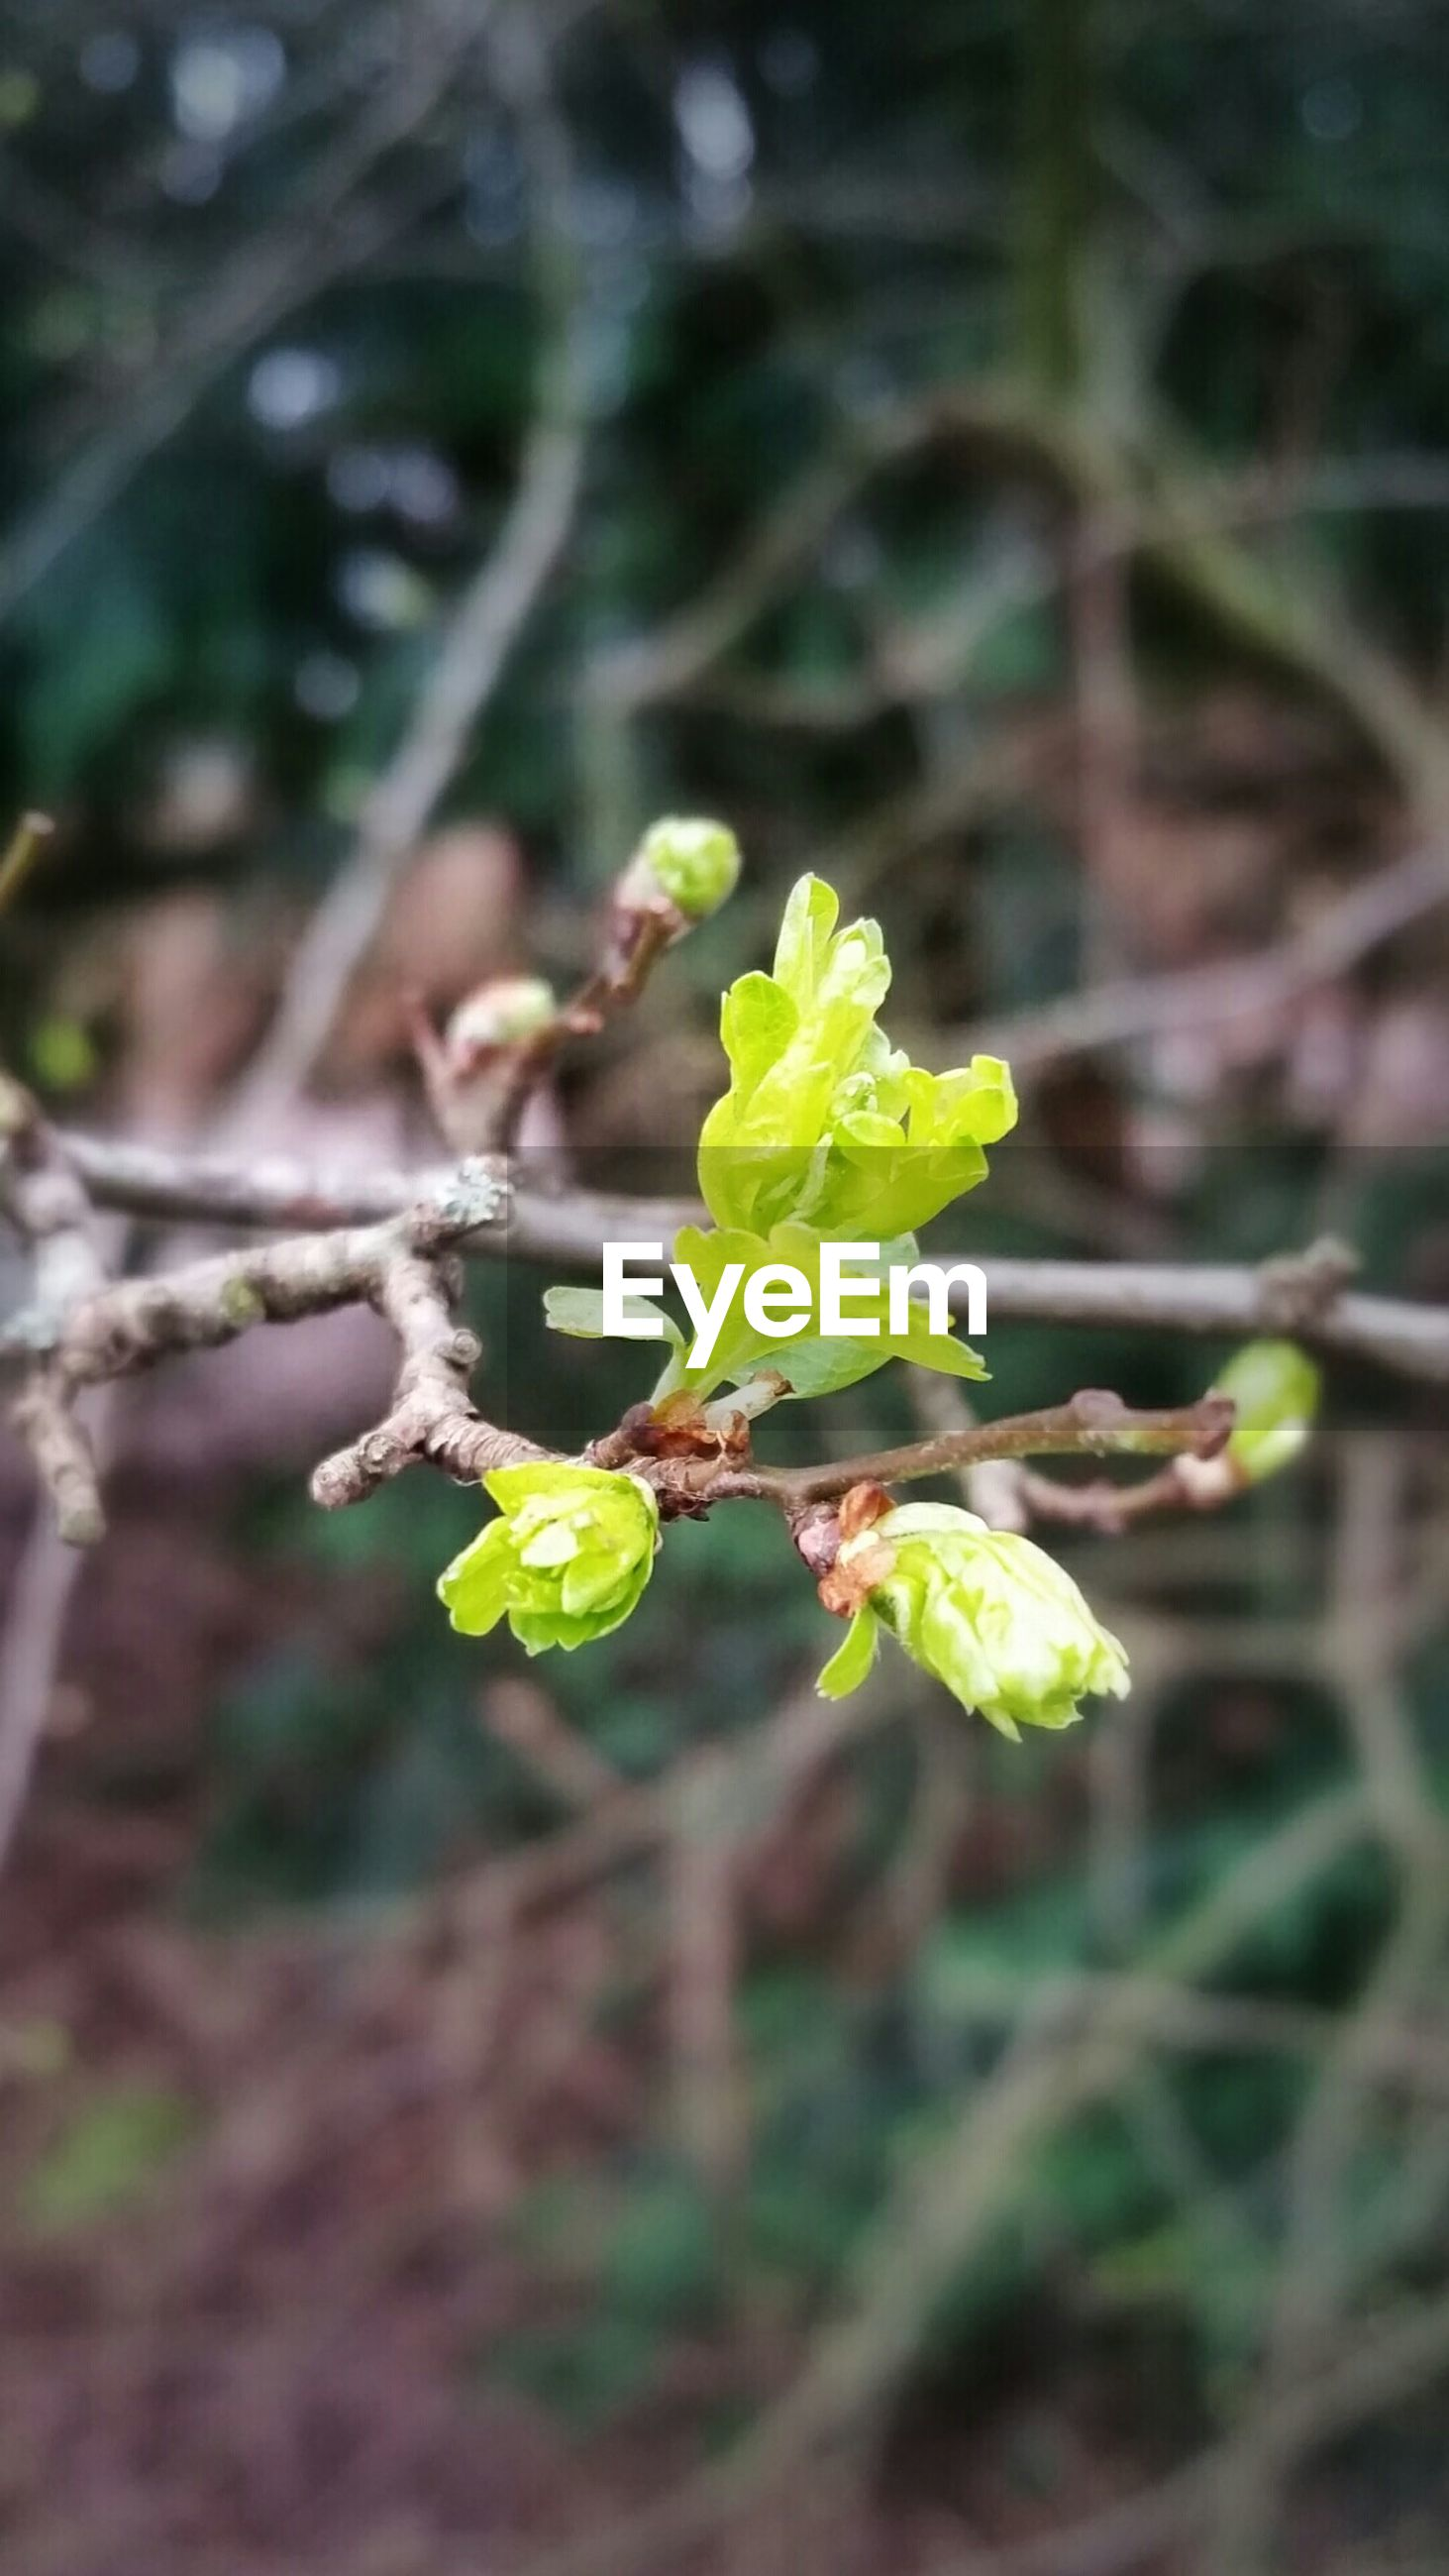 growth, leaf, green color, plant, focus on foreground, close-up, nature, freshness, selective focus, new life, beginnings, beauty in nature, growing, stem, bud, outdoors, green, day, fragility, no people